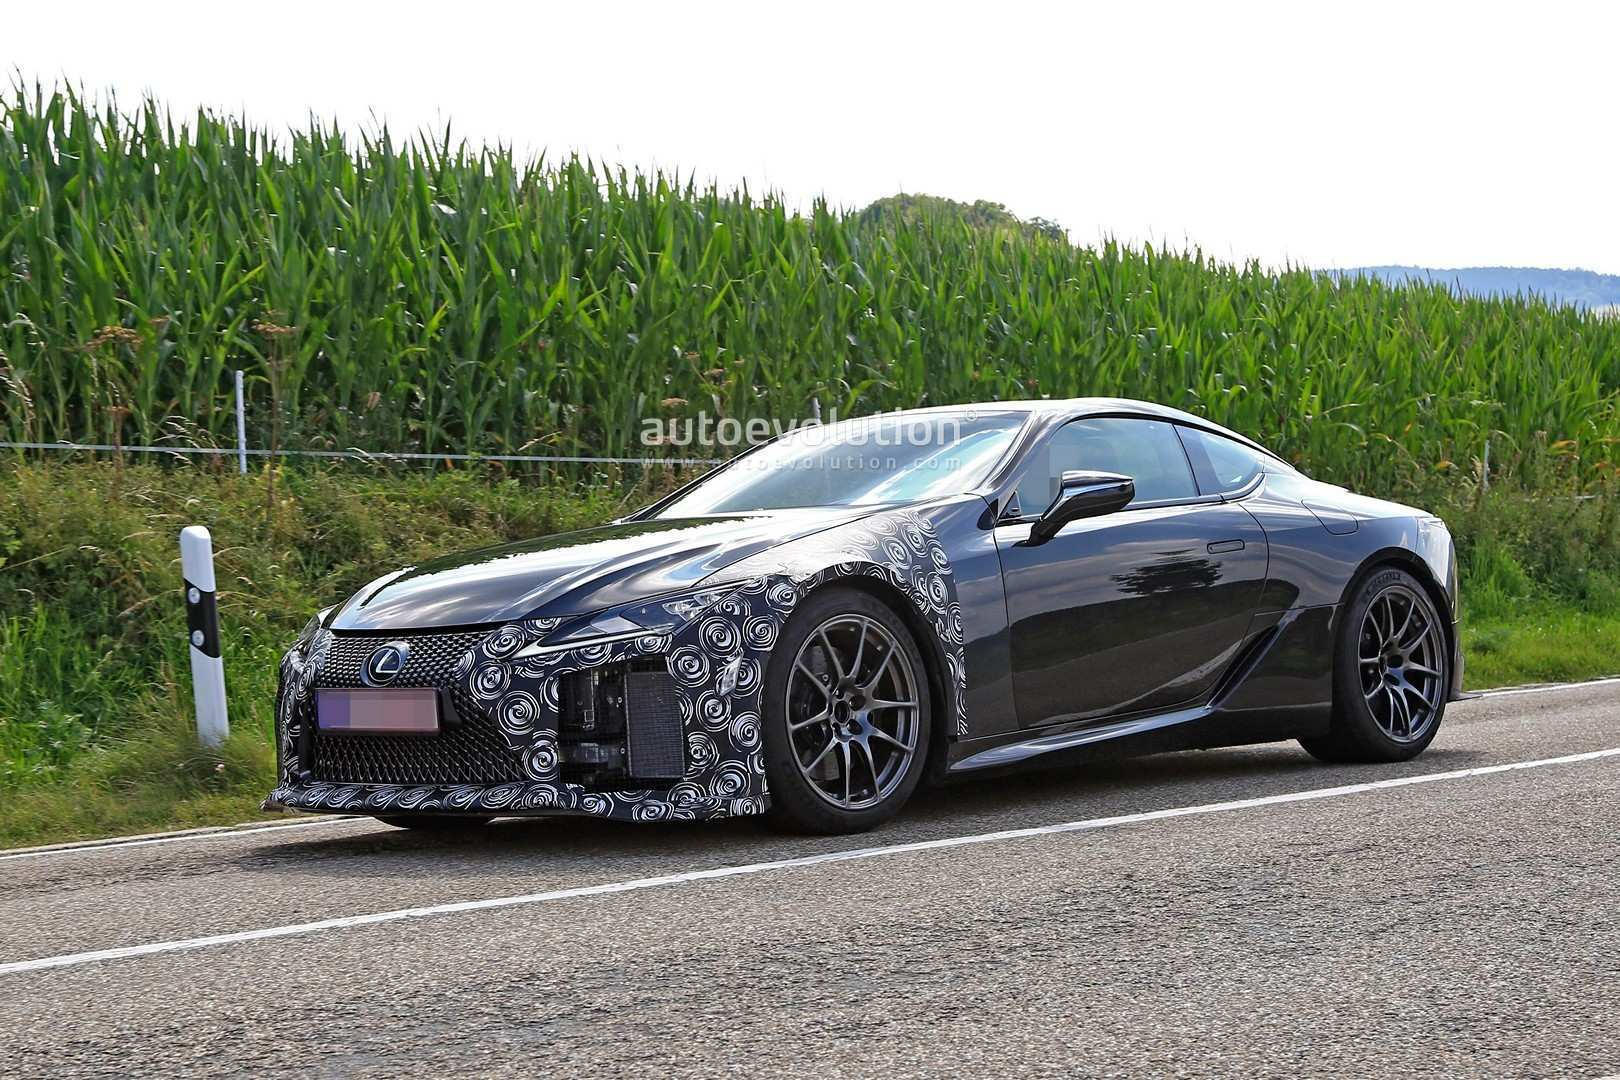 58 All New 2020 Lexus Lc F New Concept by 2020 Lexus Lc F